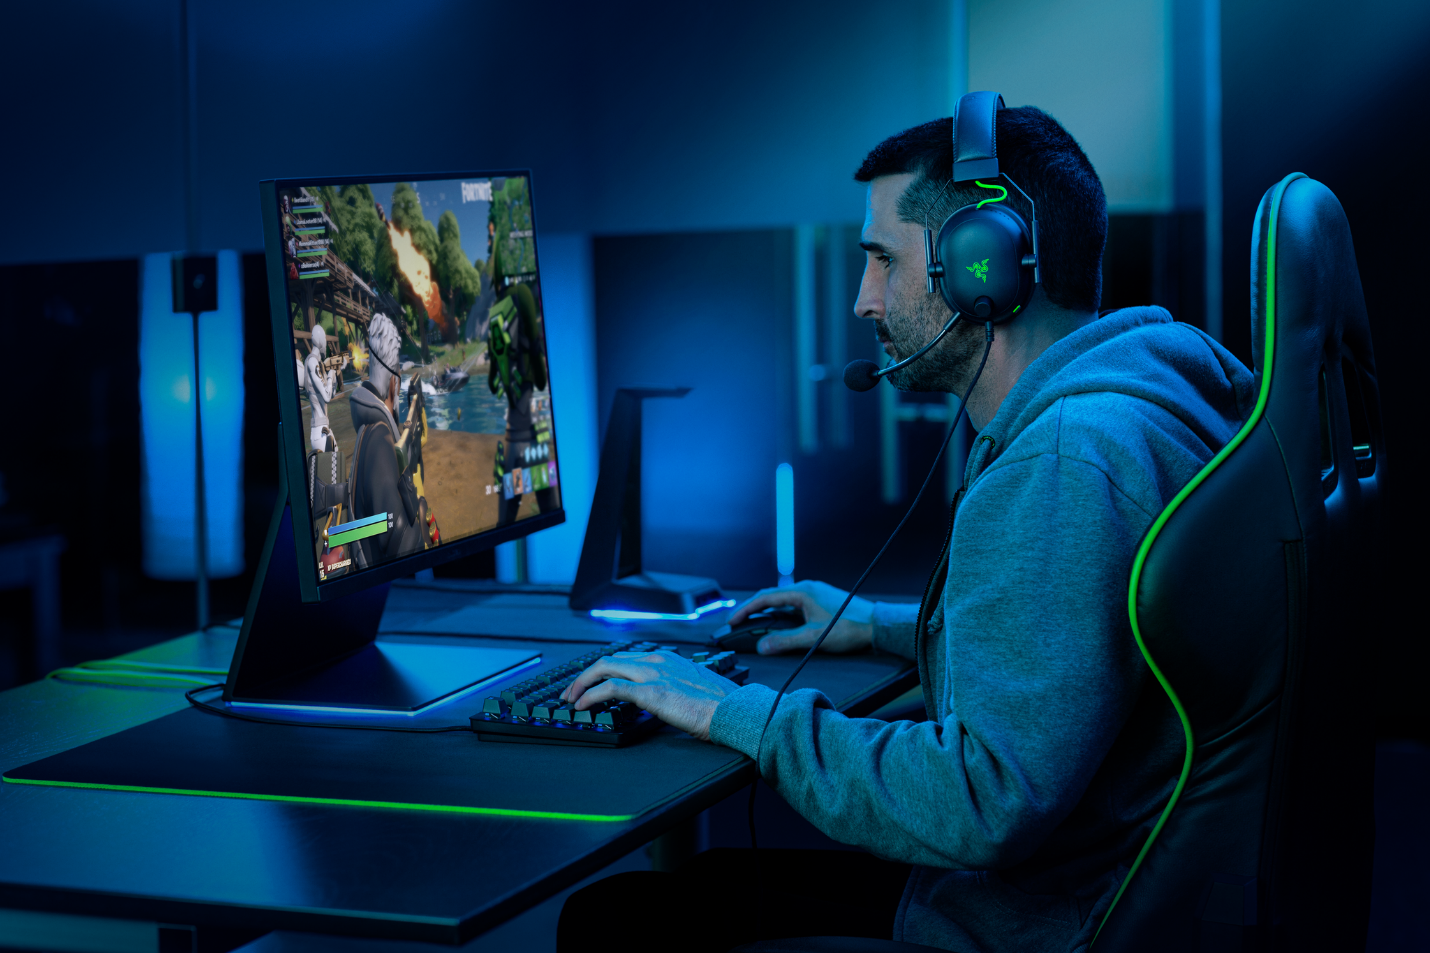 Razer's BlackShark V2 headset with THX Spatial Audio being used by a man to play video games